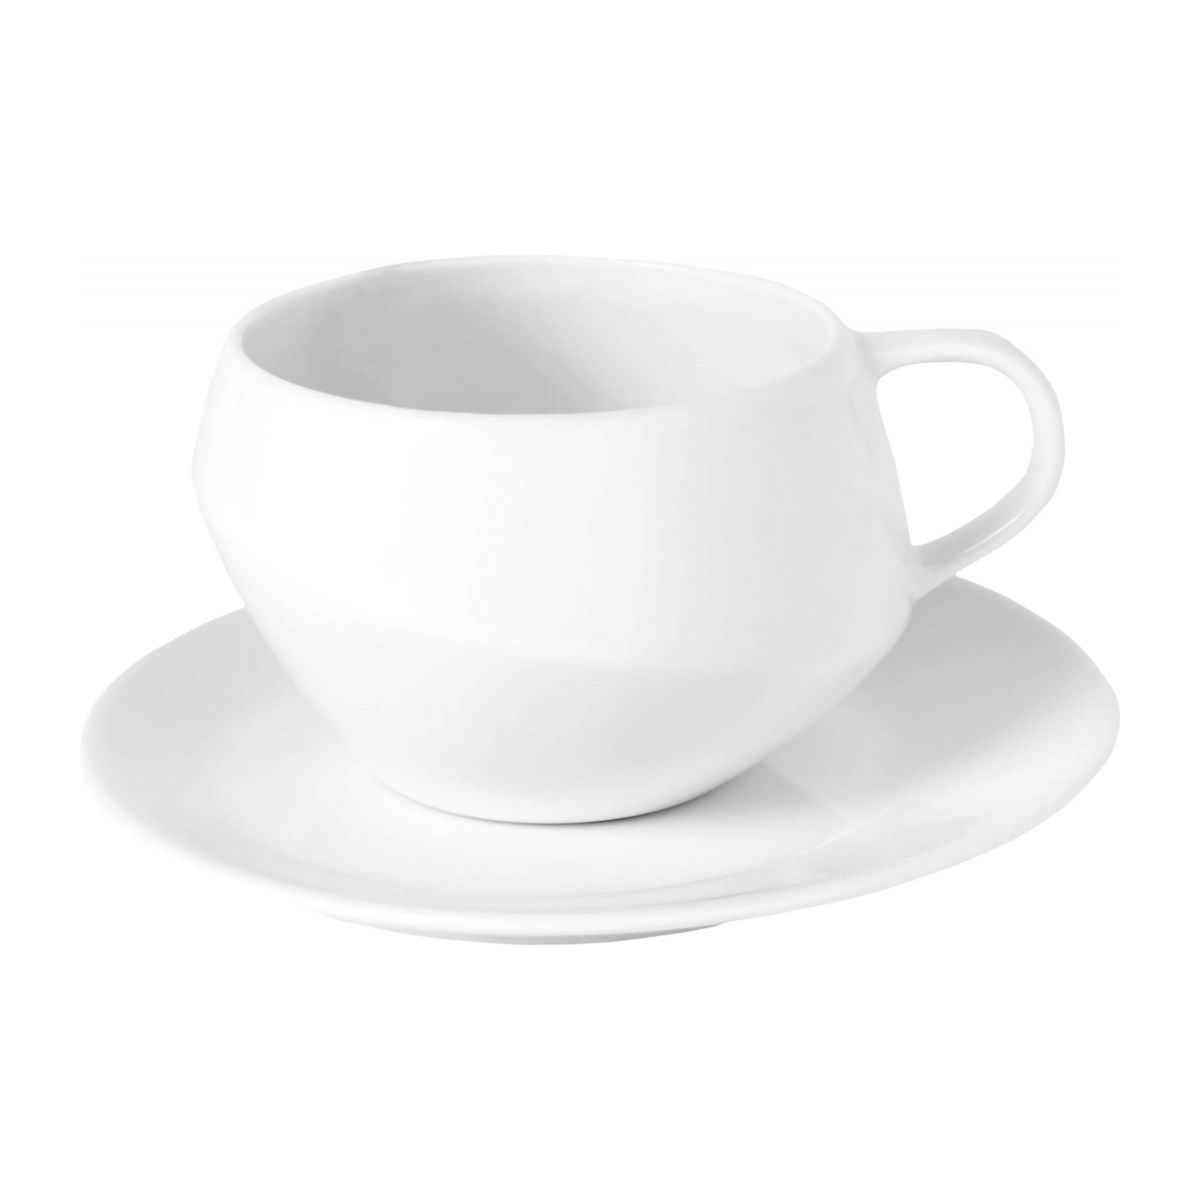 Tea cup and saucer n°1